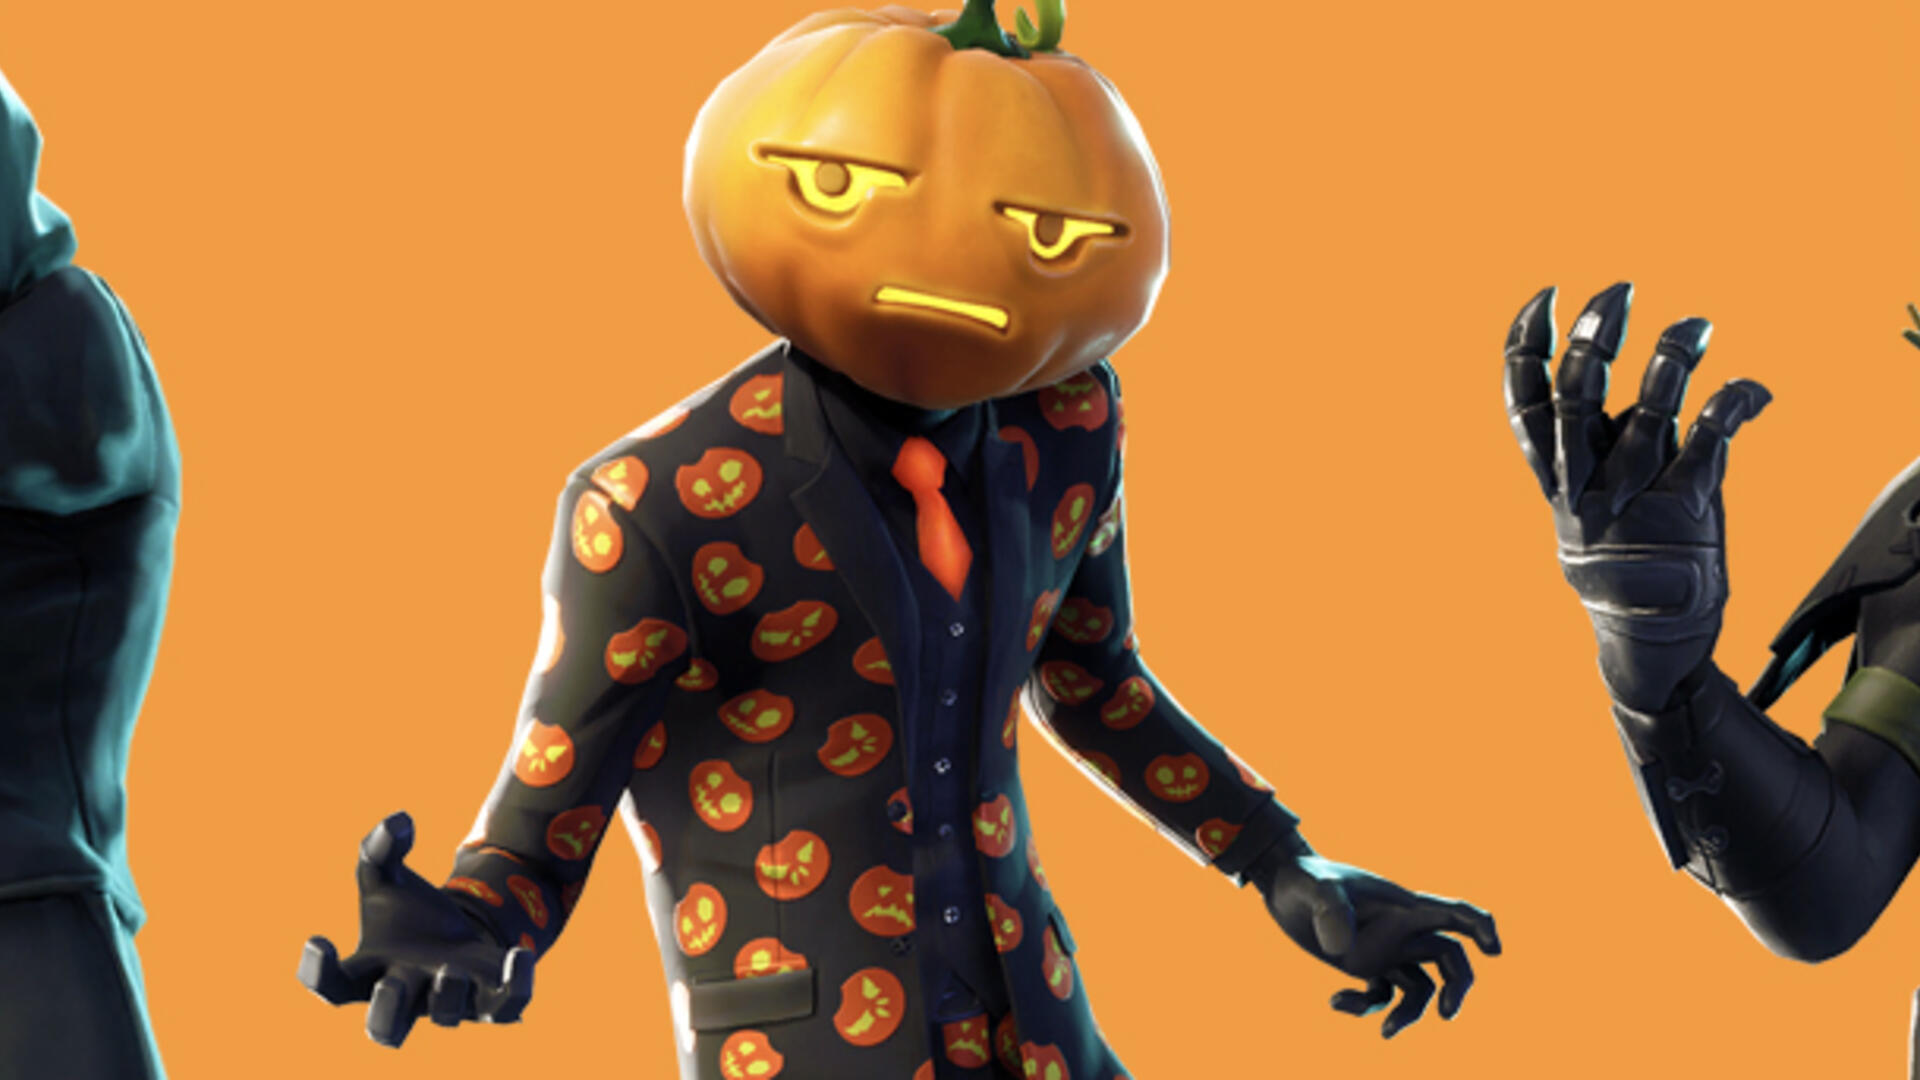 Fortnite v6.20 Patch Notes Are Here, Include Fortnitemares and a New Six Shooter